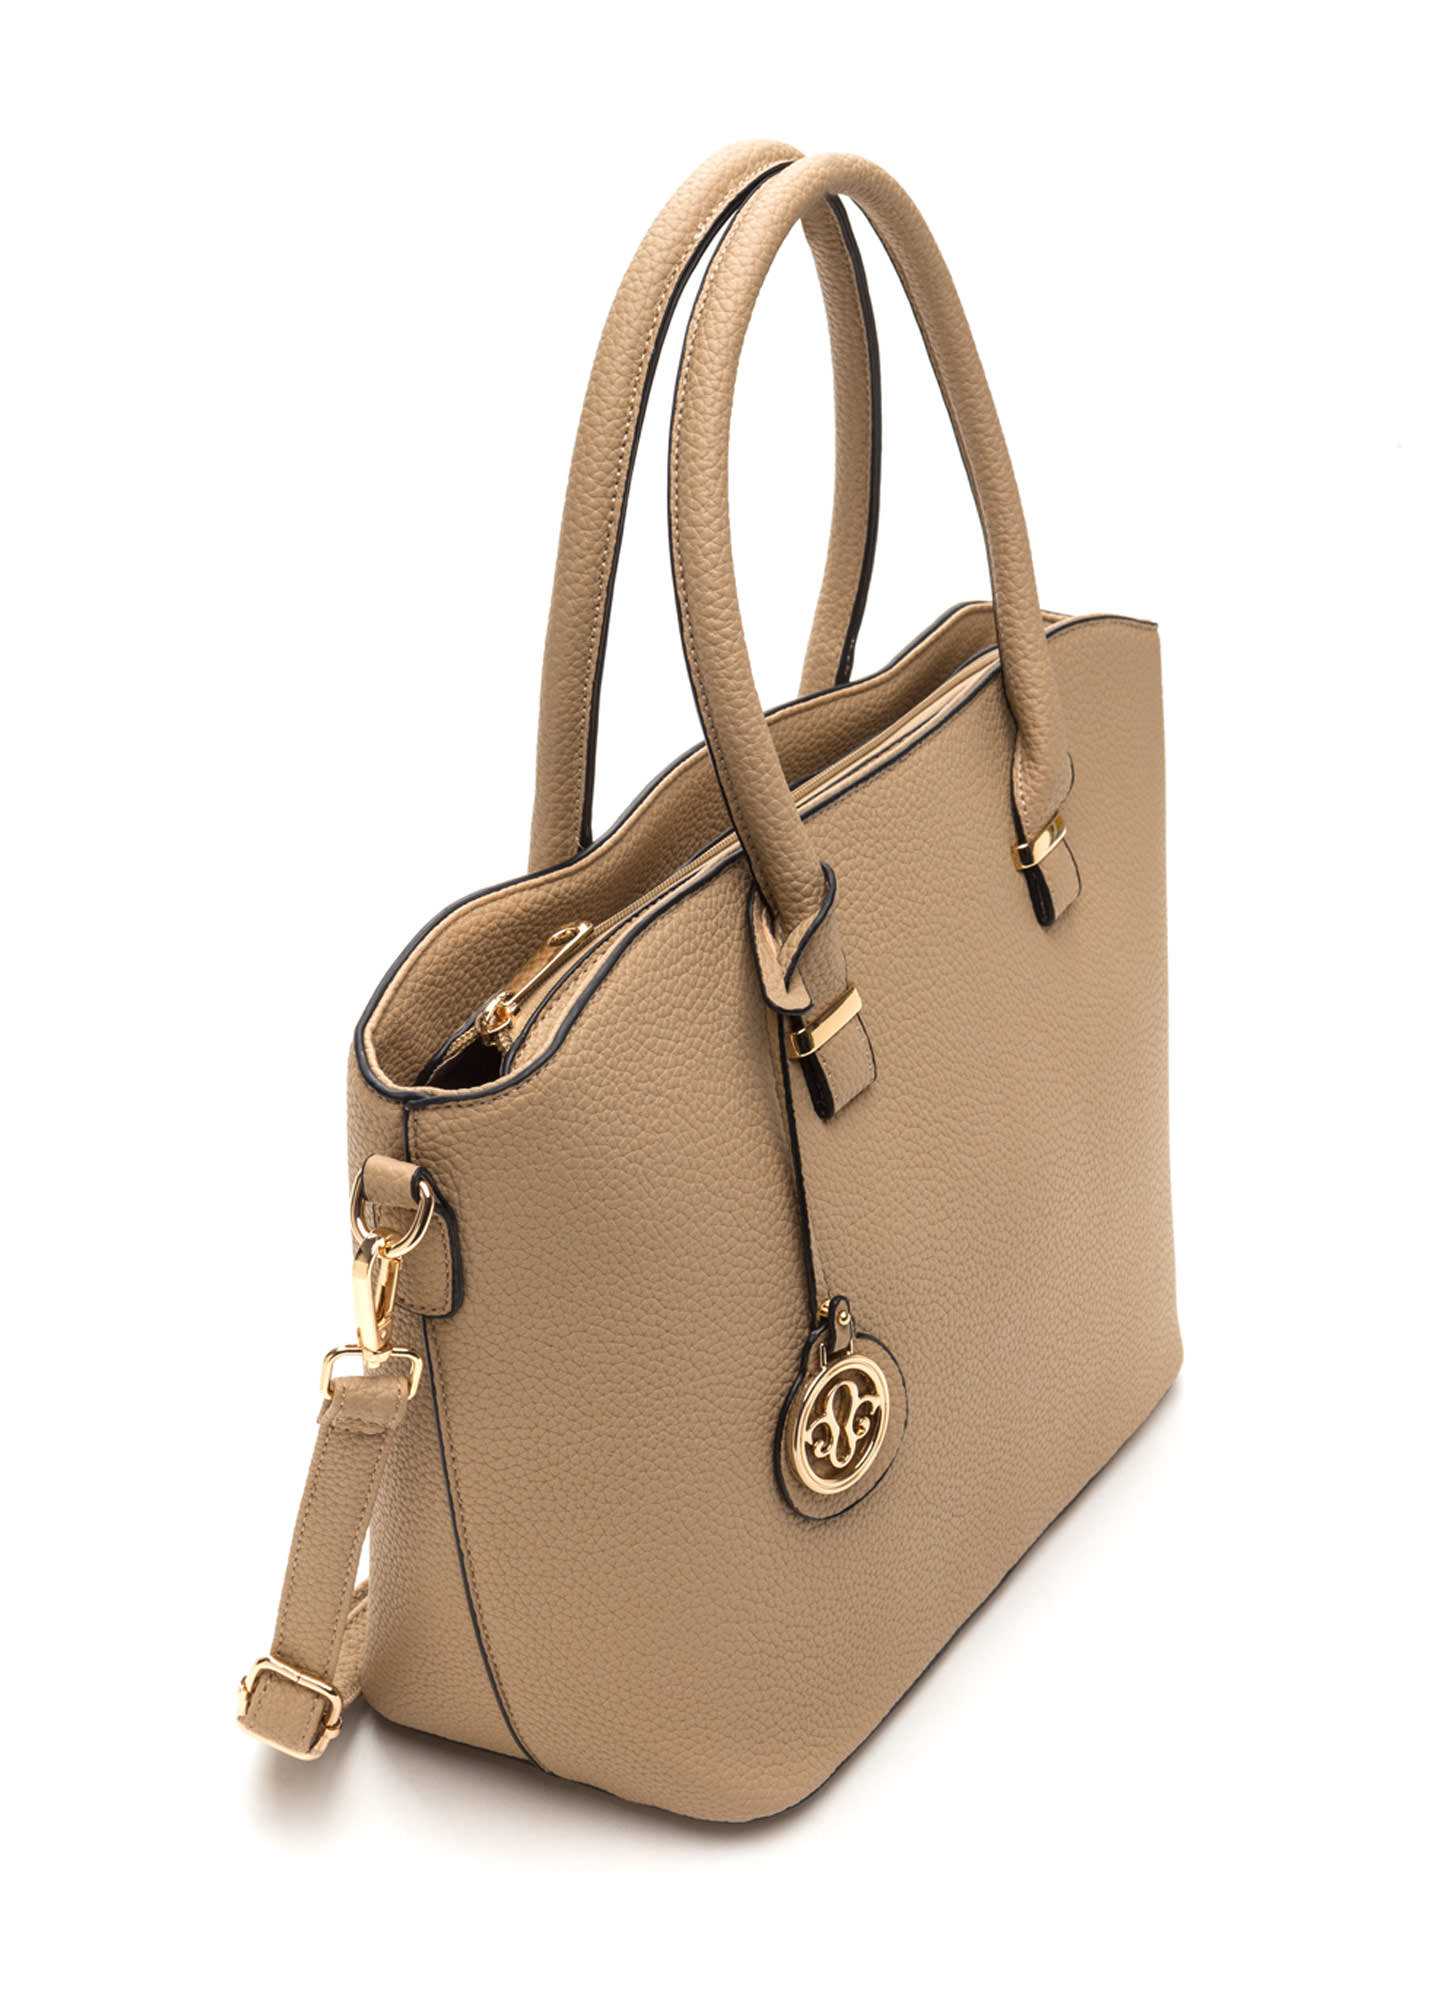 First Lady Faux Leather Bag Set TAN